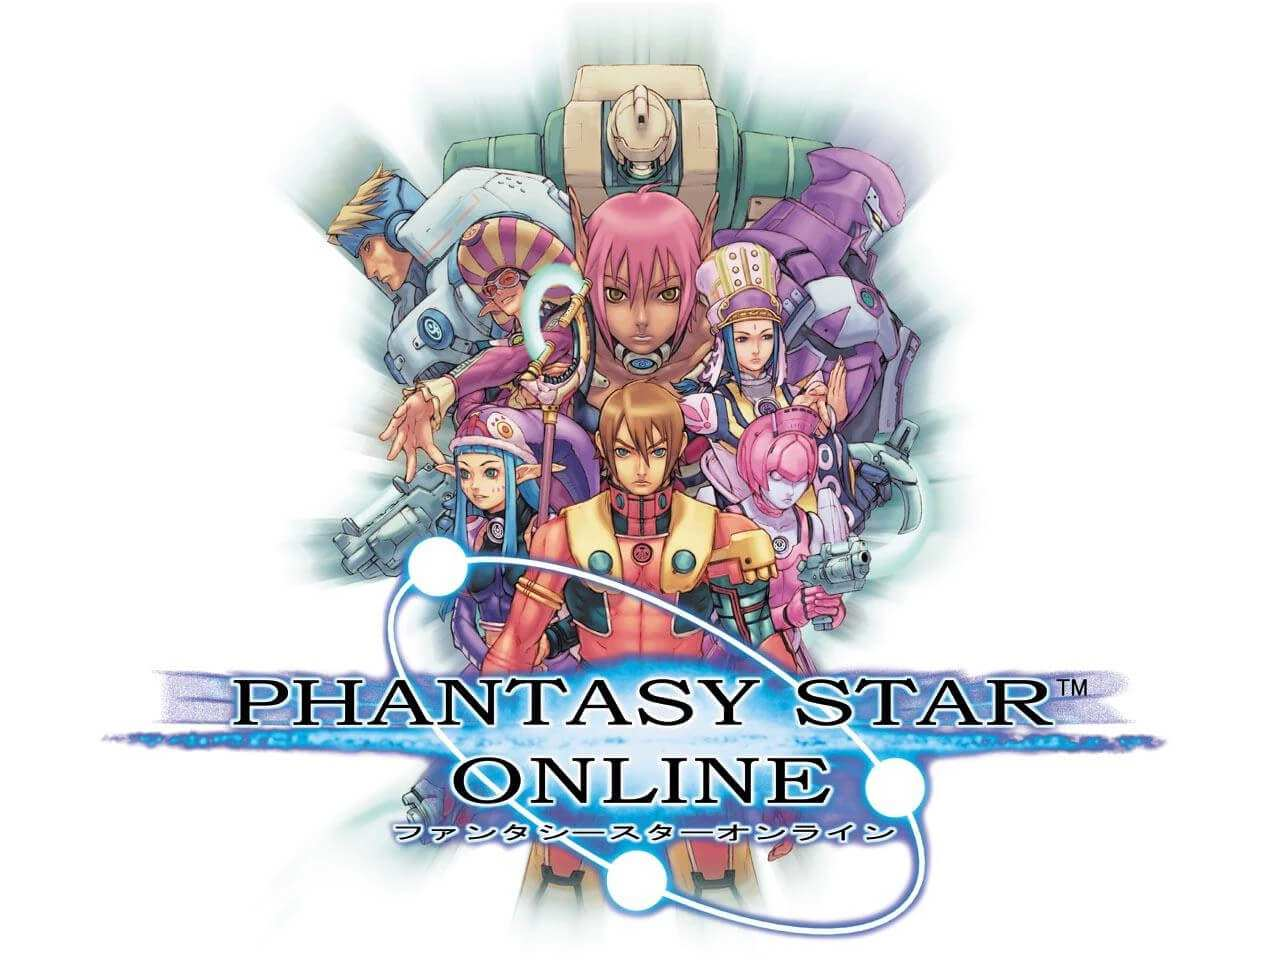 image from Phantasy Star Online